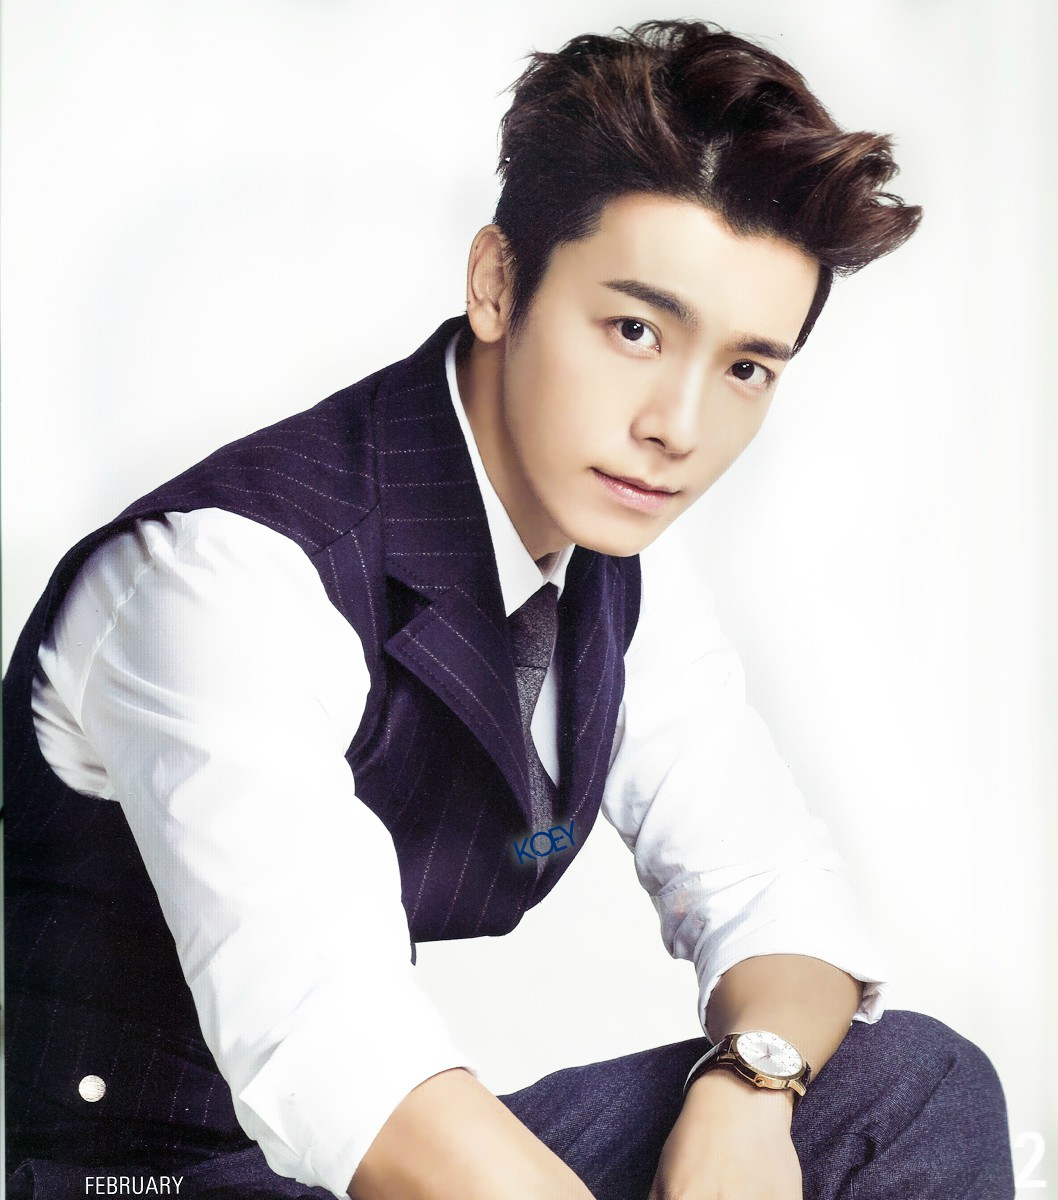 lee donghae dating 2012 movies